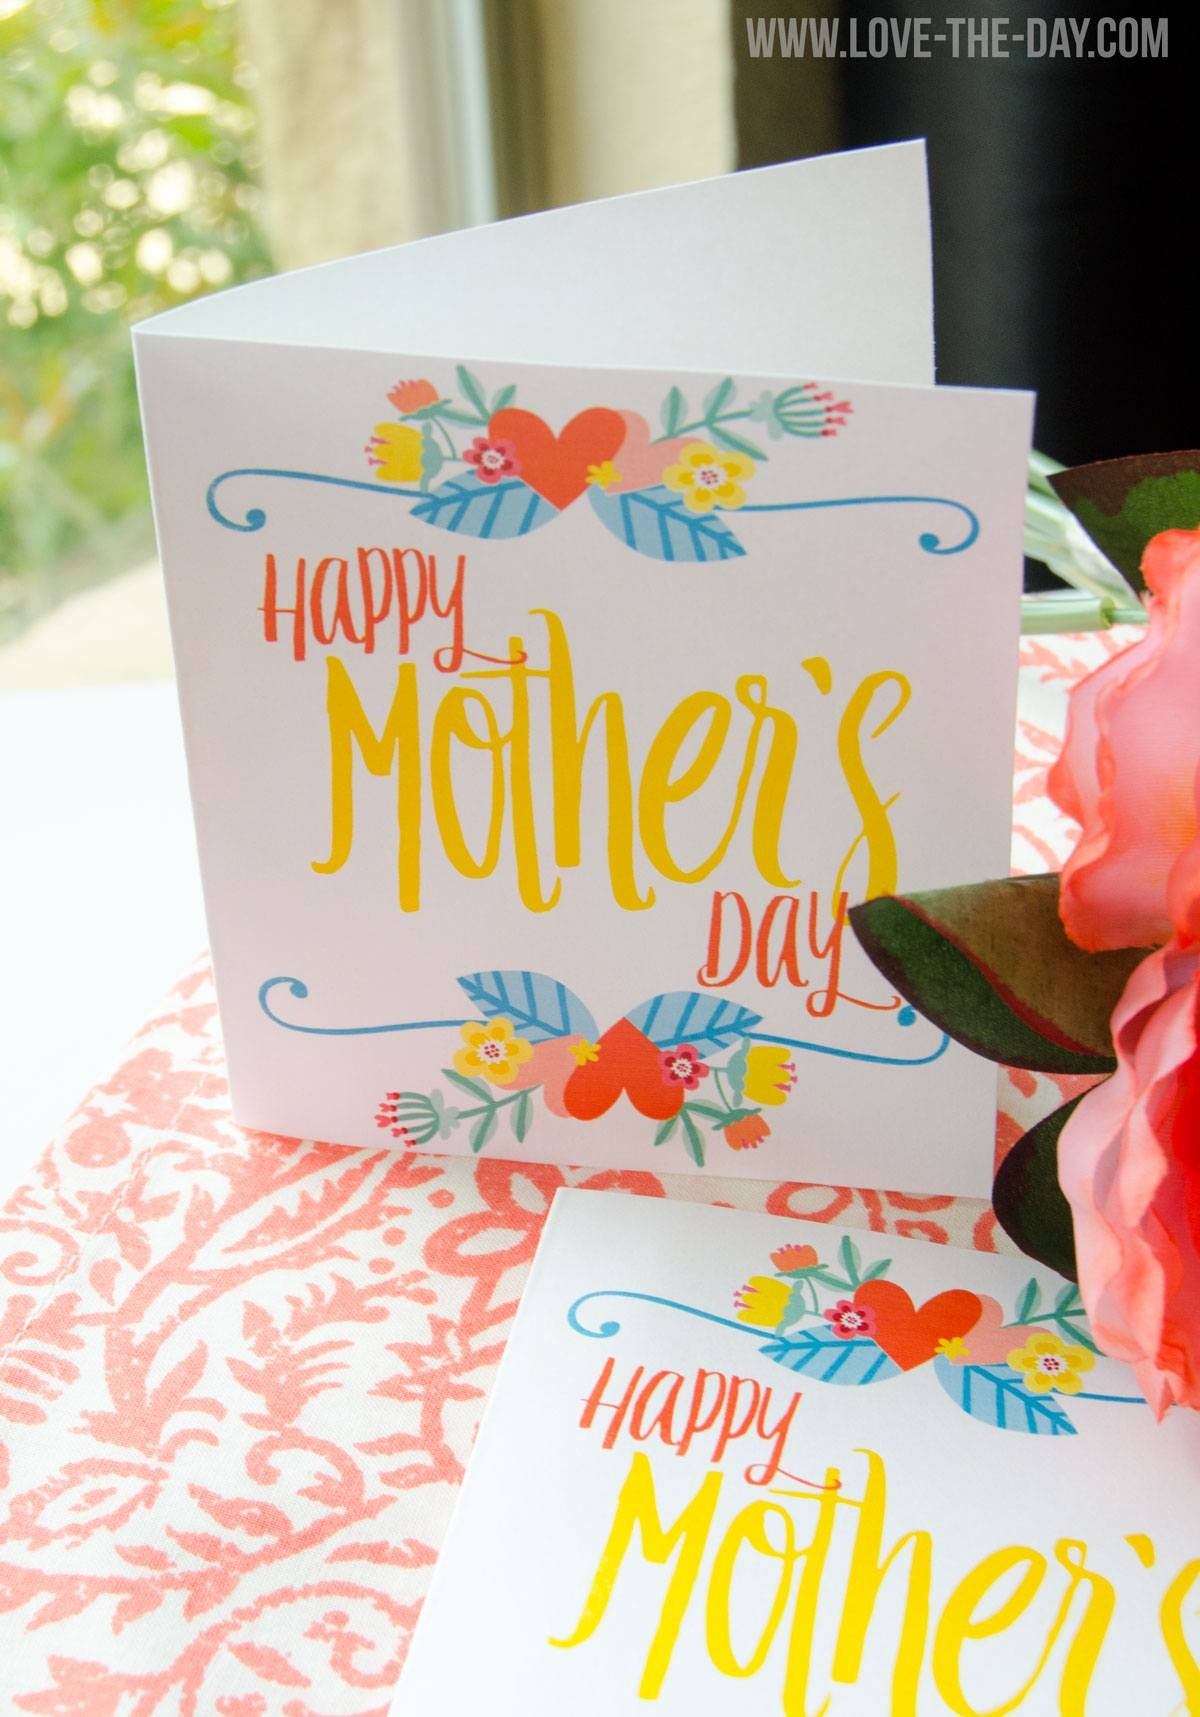 Free Printable Mother's Day Cardlindi Haws Of Love The Day - Free Printable Mothers Day Cards No Download